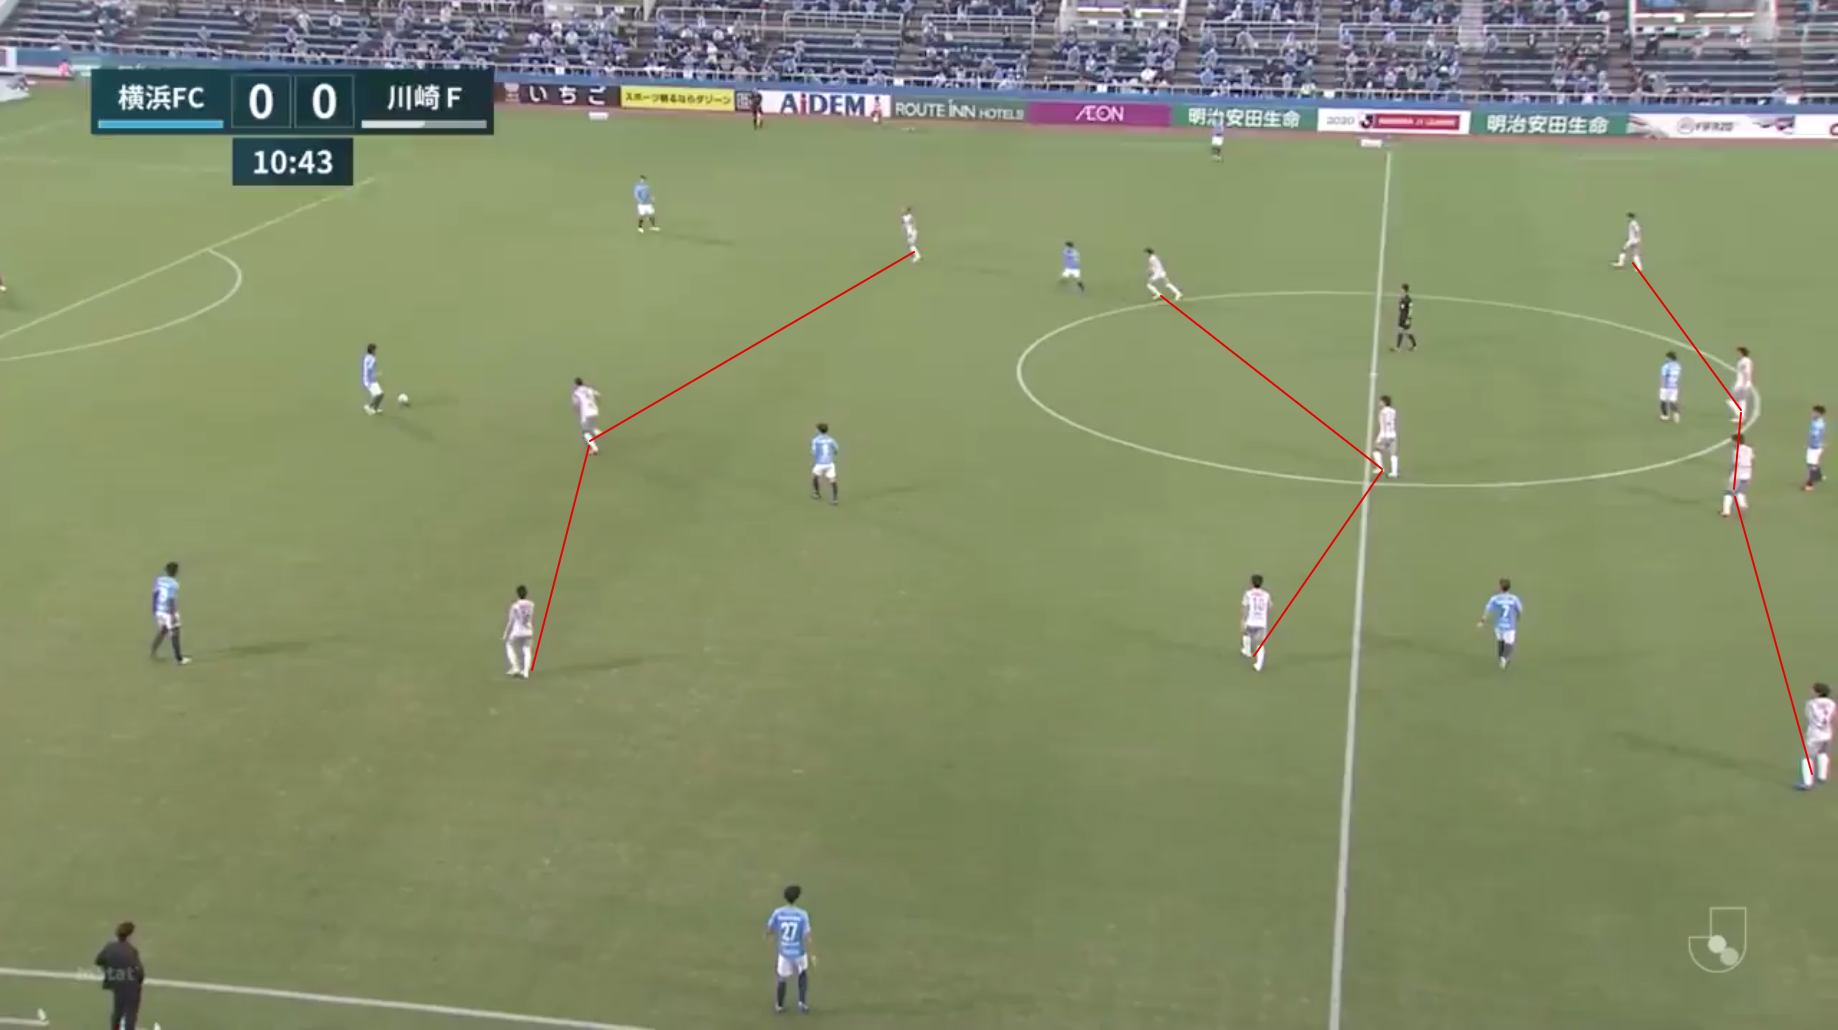 J League 2019/2020: Kawasaki Frontale vs Yokohama FC - tactical analysis tactics